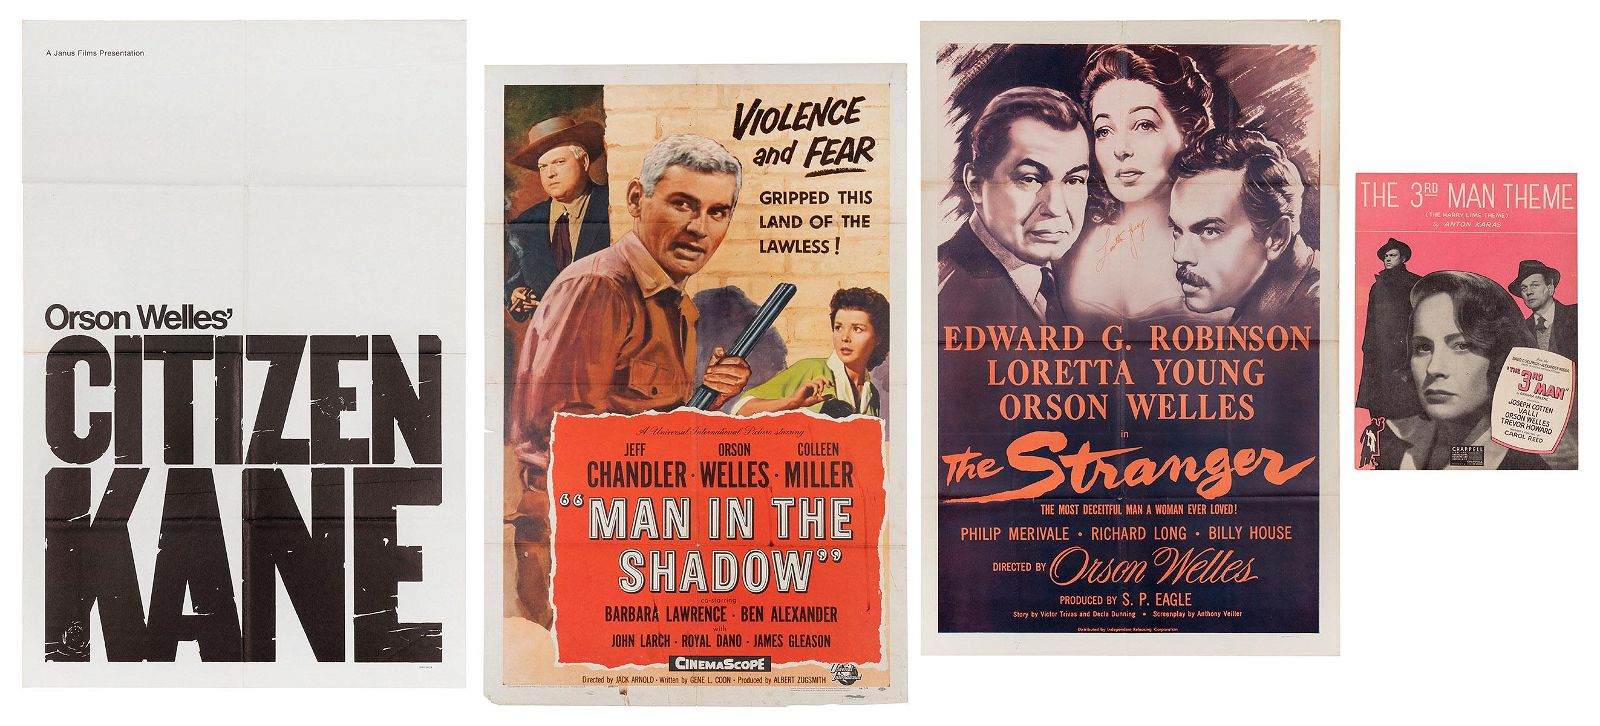 Collection of Orson Welles Movie Posters, Stills, and